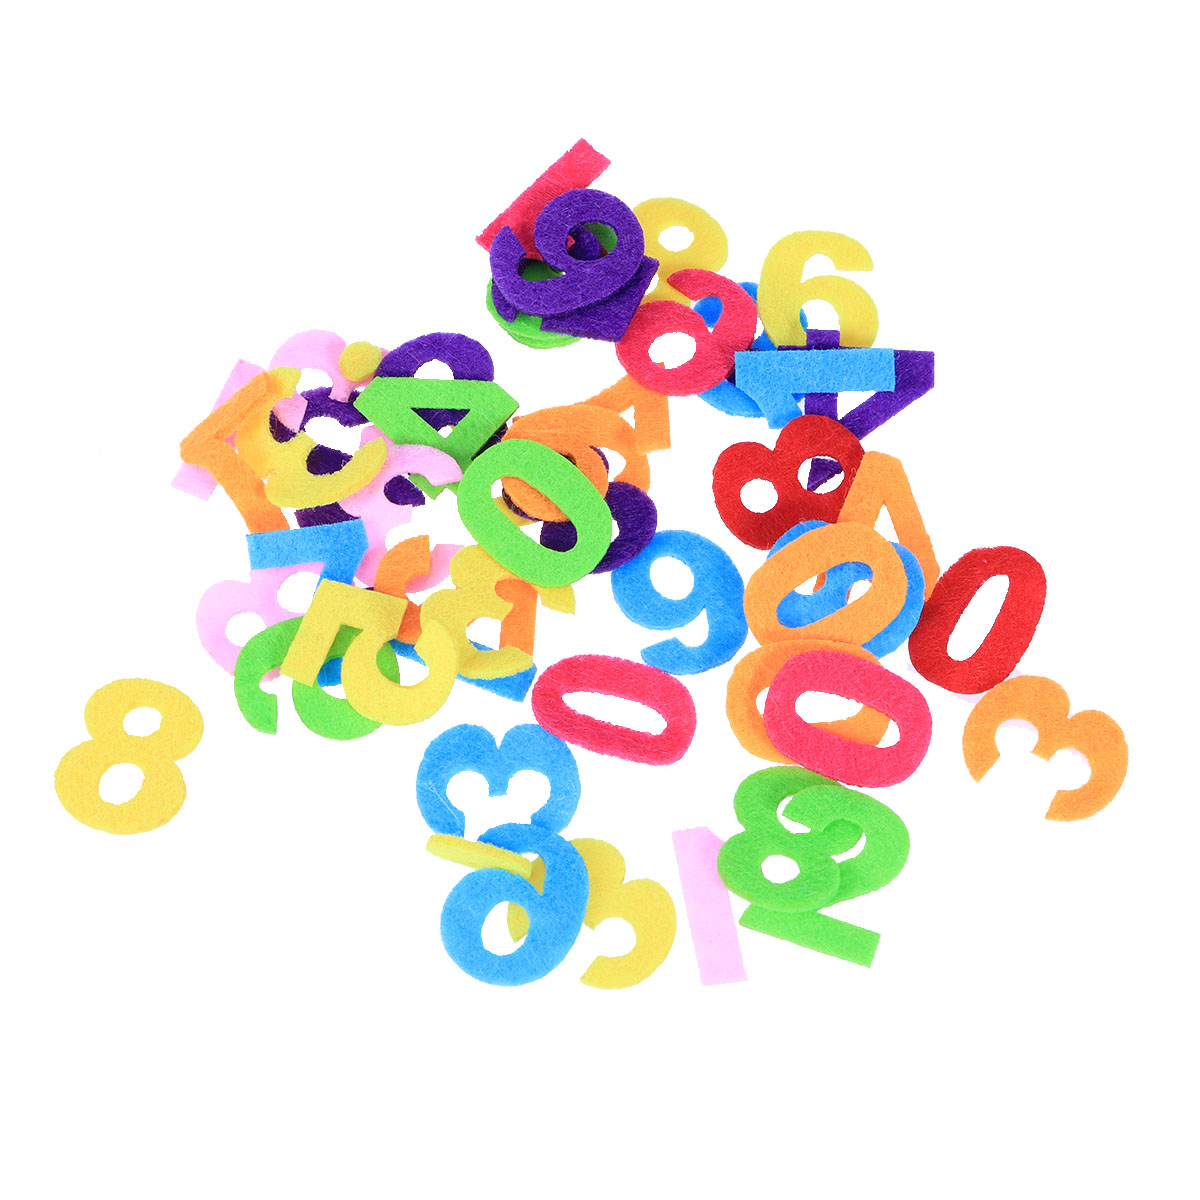 50pcs Felt Non-Woven Fabric Colorful Numbers DIY Handmade Craft Accessory For Gifts Scrapbooking Decoration Kids Toys